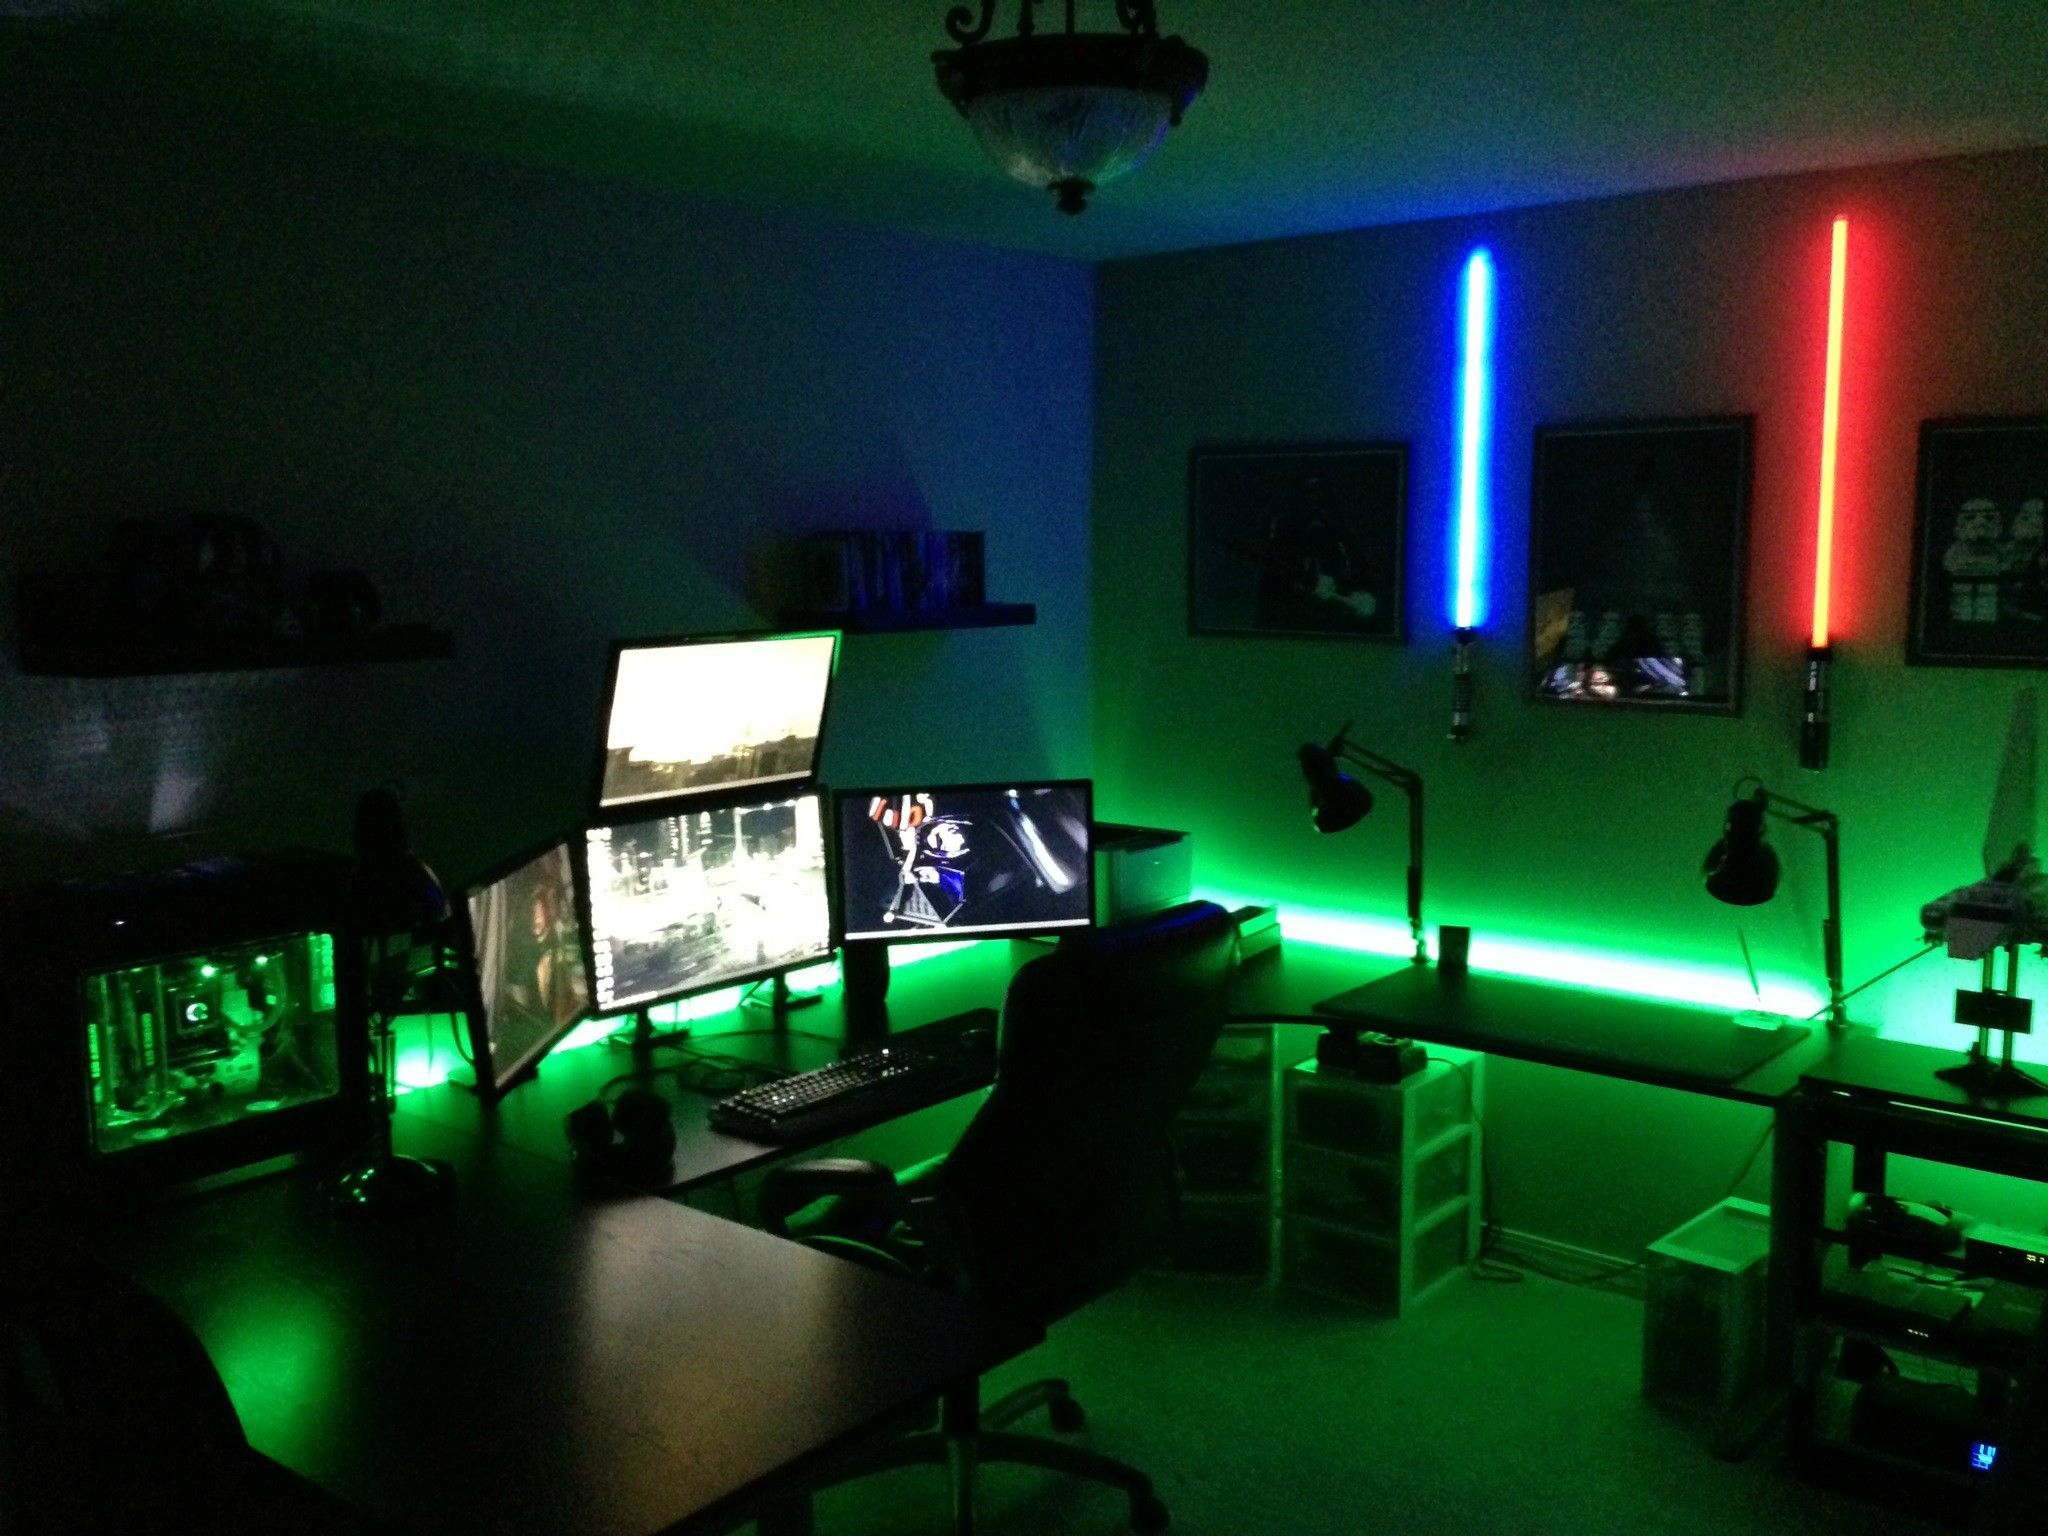 Beauteous Computer Lab Room Design With Indoor Green Shades Of Amazing Setups And Gaming Lighting Light Along Game Room Decor Video Game Rooms Video Game Room